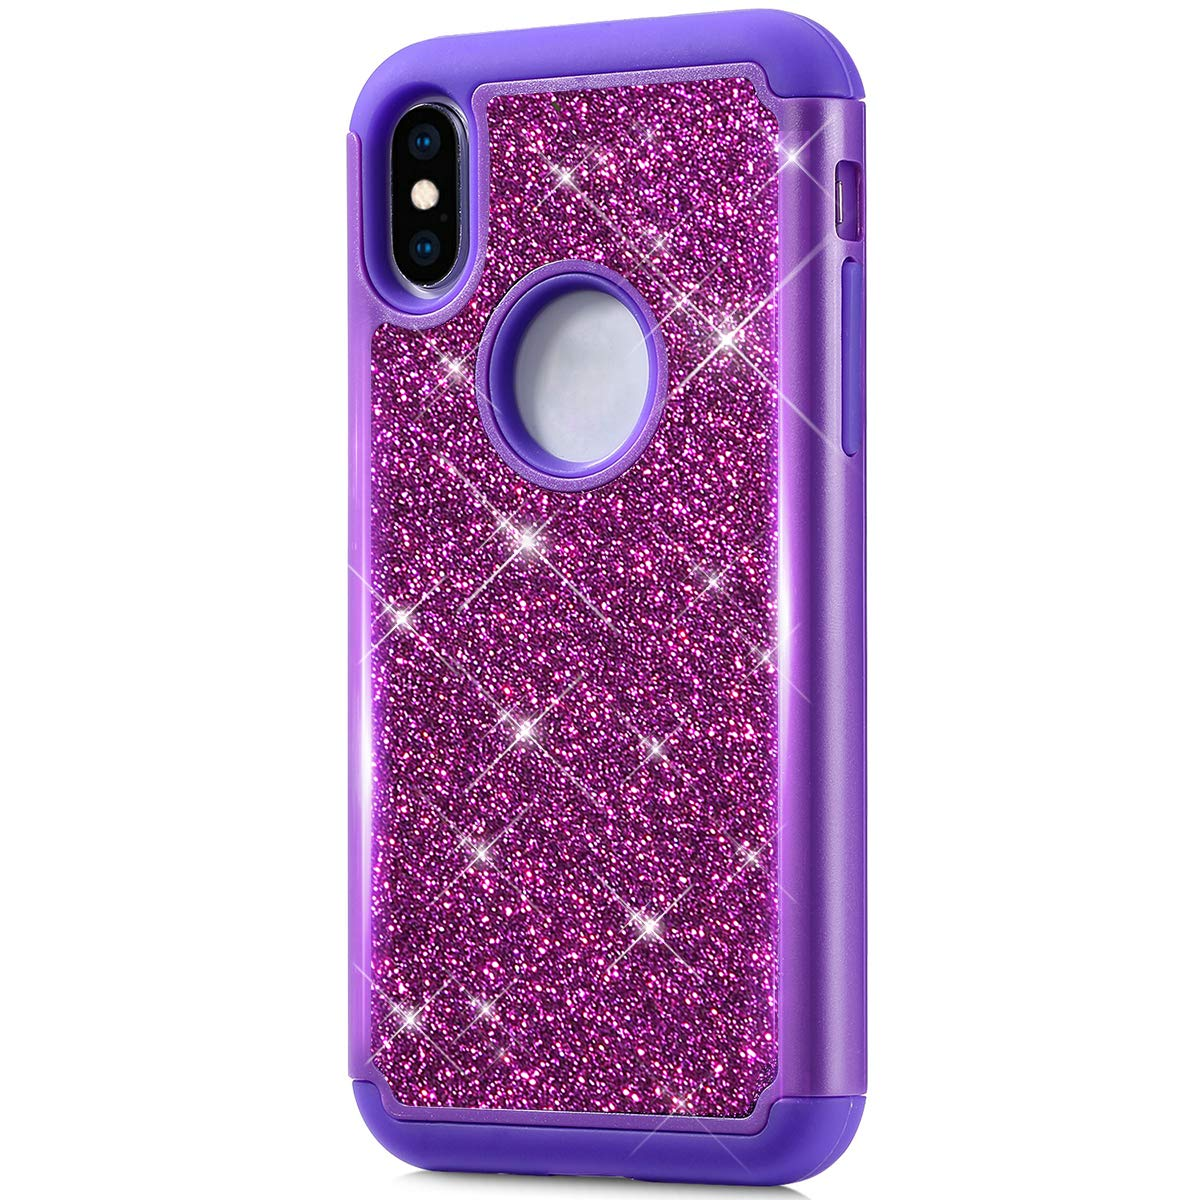 ikasus Case for iPhone XS/X Bling Case,Glitter Sparkle Bling Full-Body Protection Heavy Duty Hybrid Shockproof Defender Hard Shell Silicone Rubber TPU Cover Case for iPhone XS/X Cover,Purple by ikasus